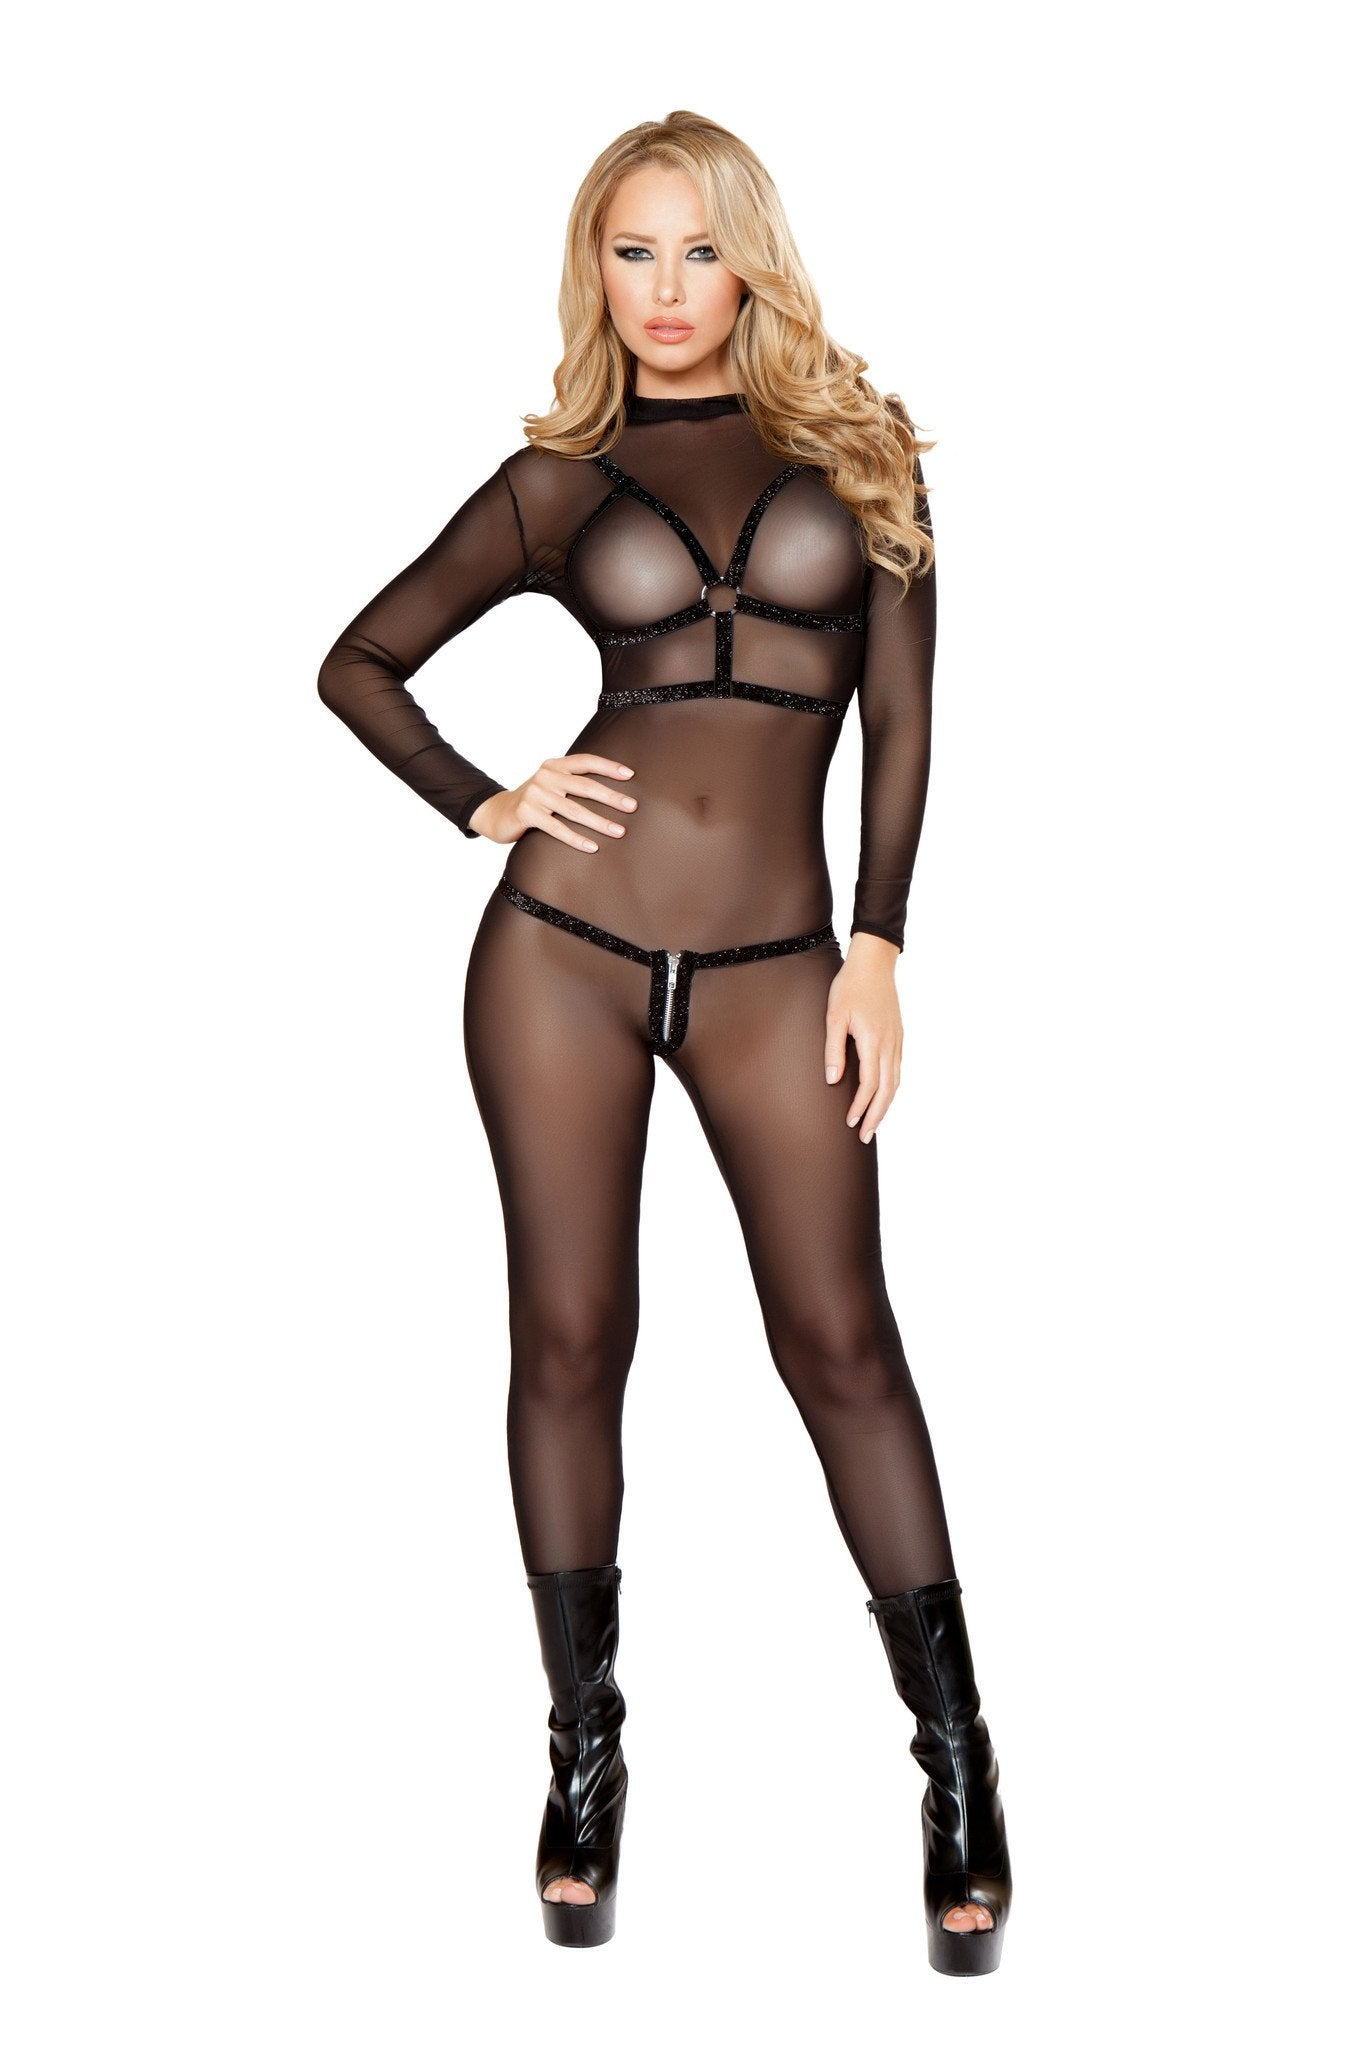 Shiny Elastic Holster Top with Ring and Shiny Elastic G-String